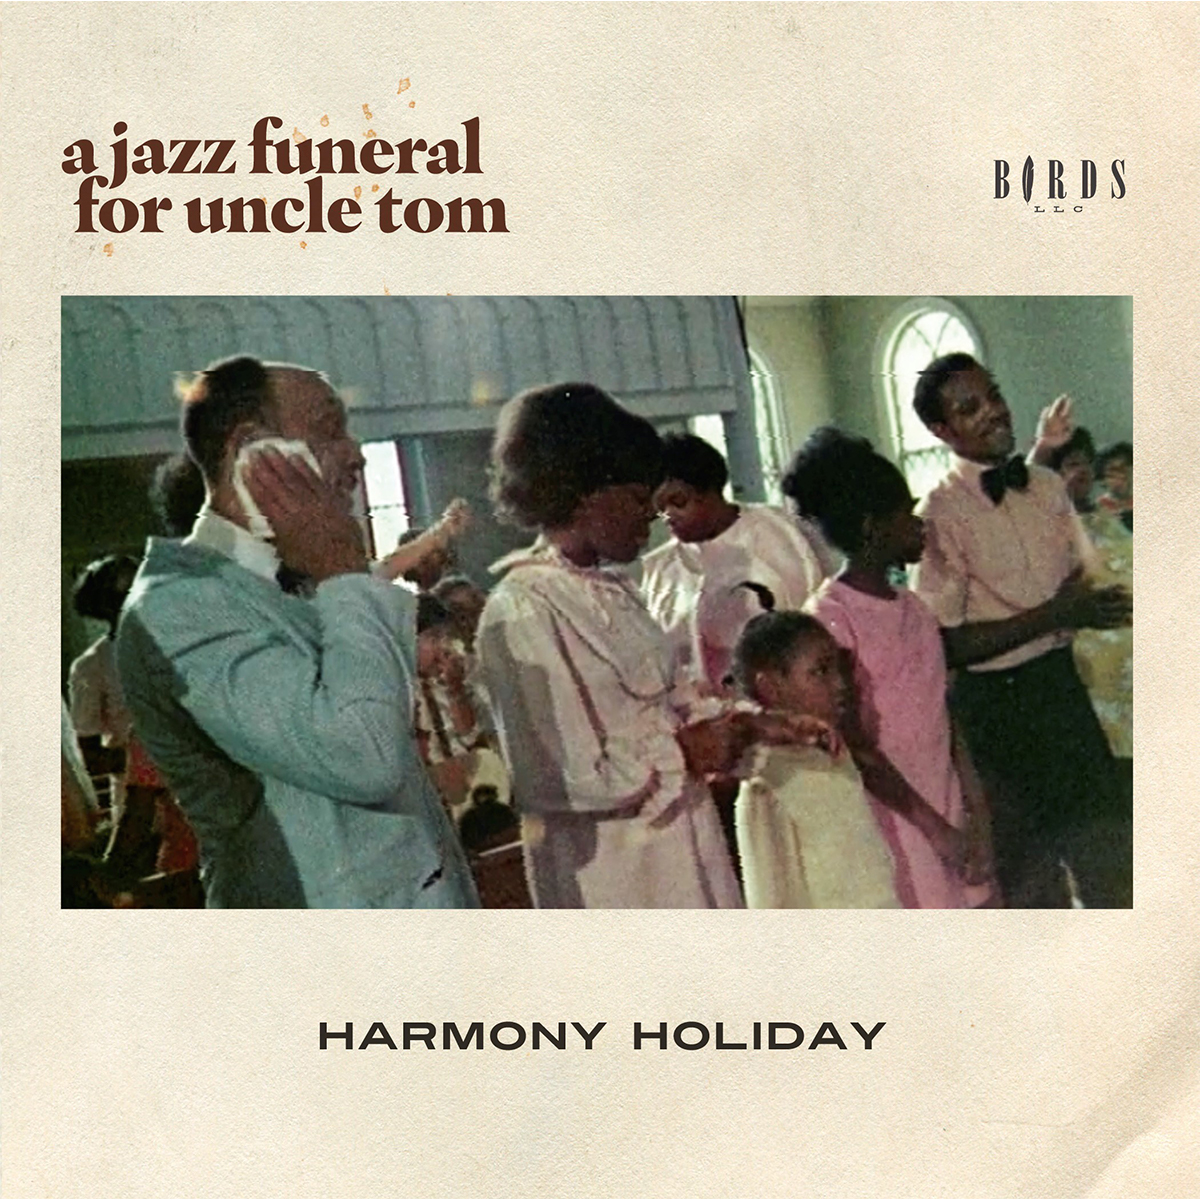 A Jazz Funeral for Uncle Tom